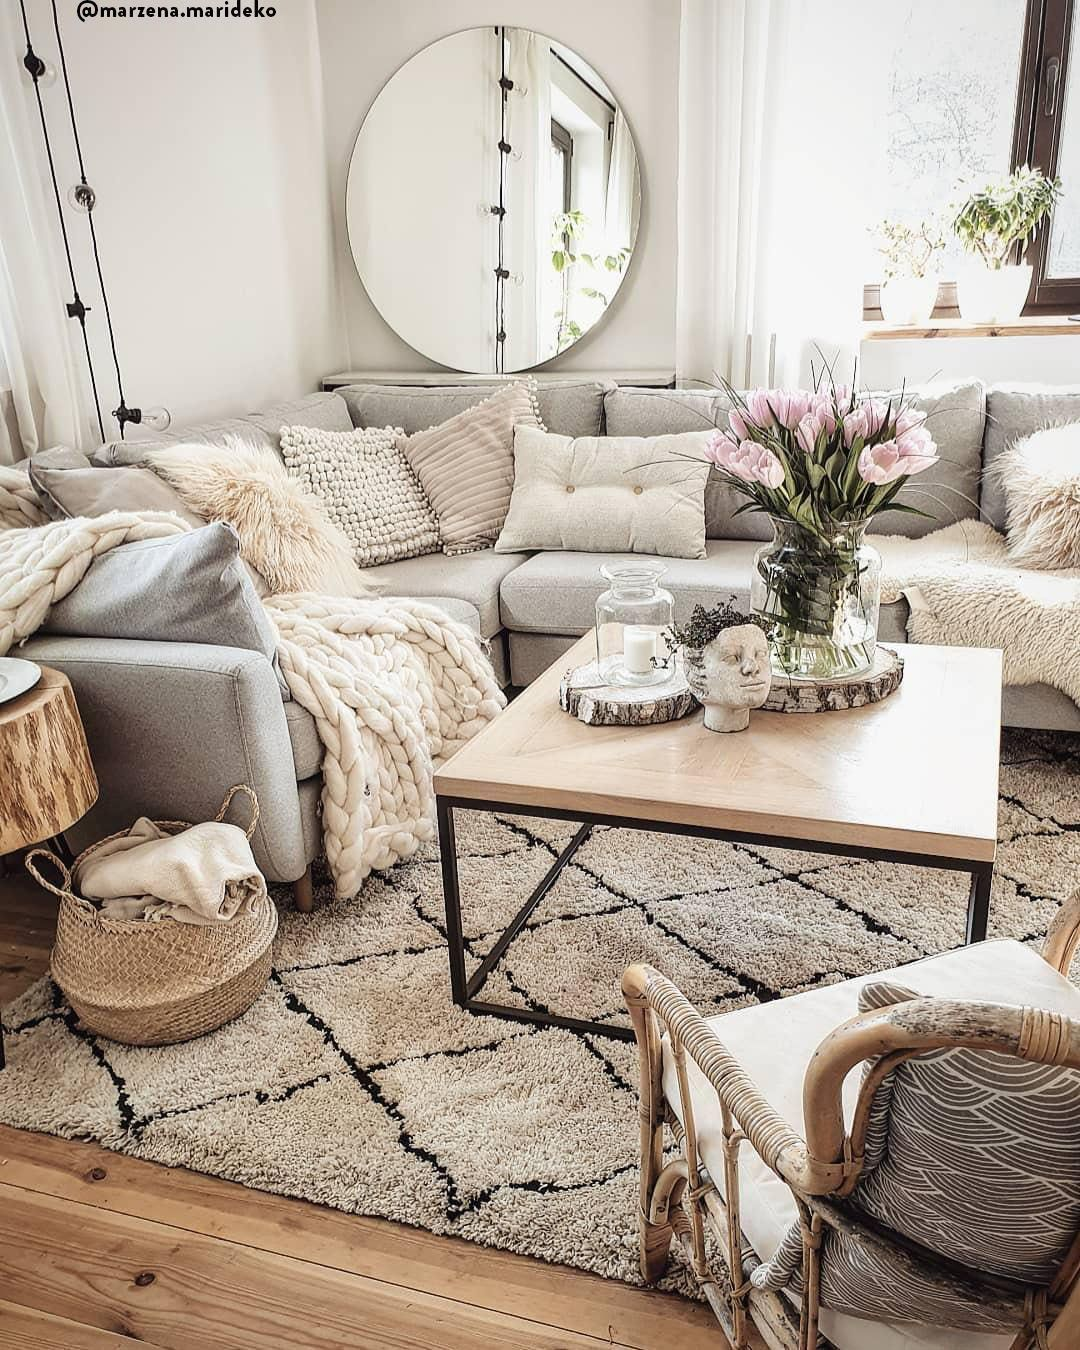 Pin By Kristy Good On Decor Ideas In 2020 Relaxing Living Room Minimalist Living Room Decor Living Room Decor Cozy